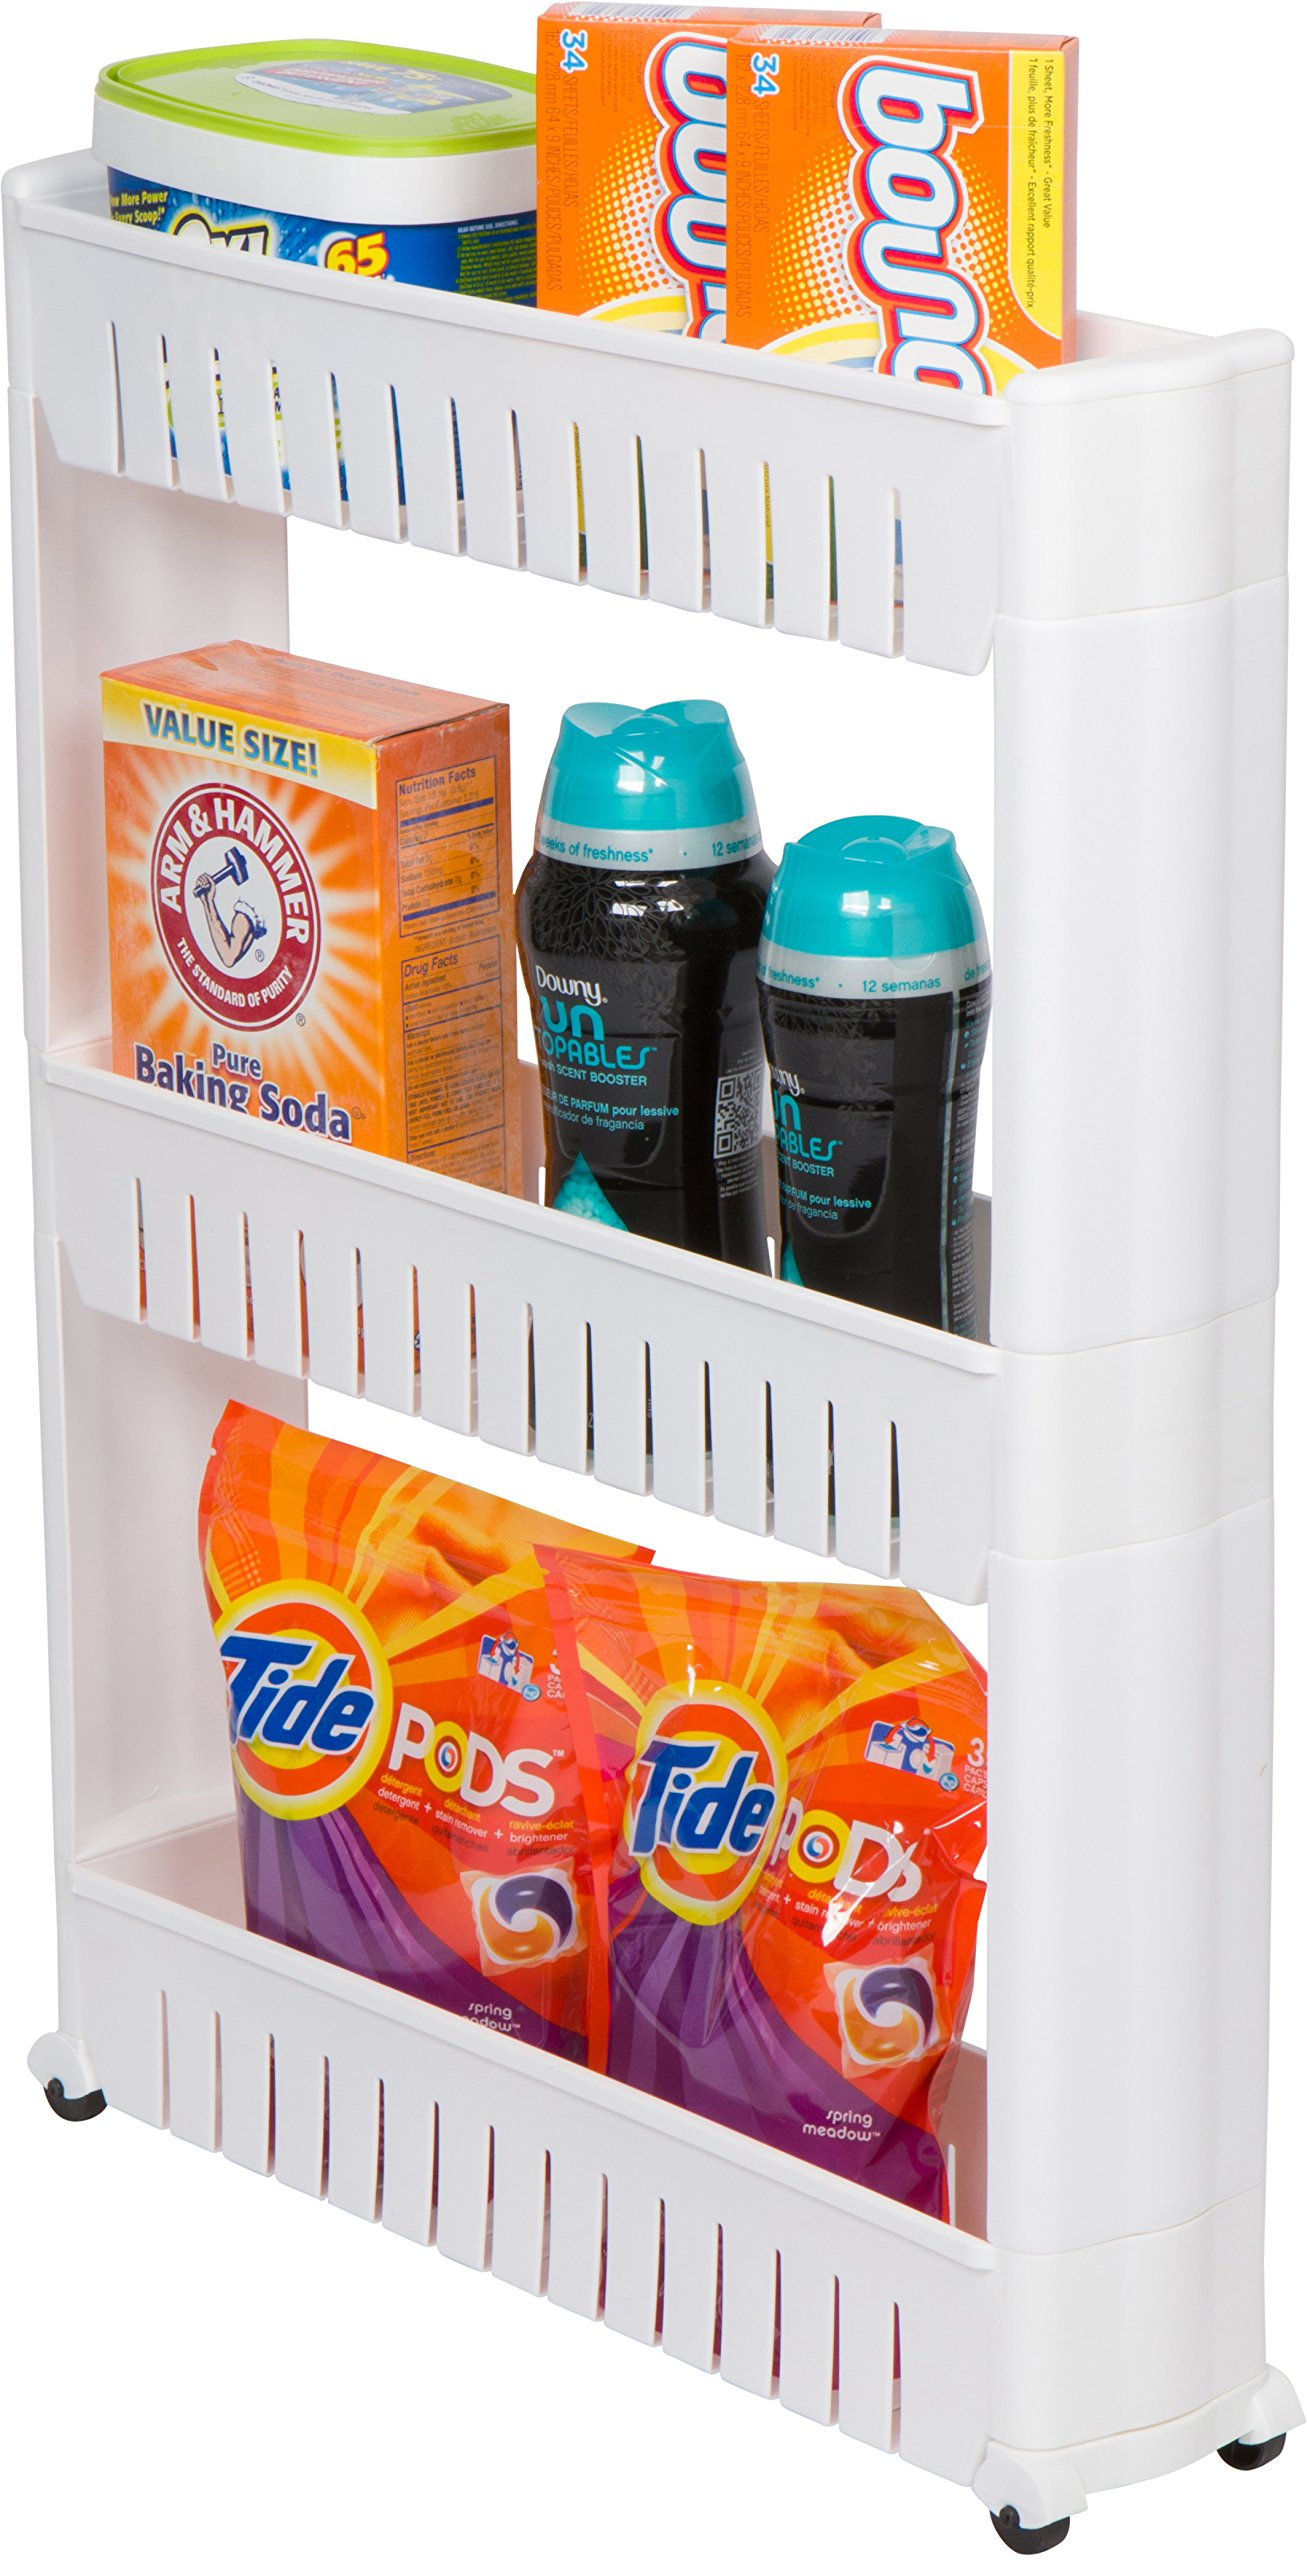 28'' Slim Slide Out Storage Tower for Laundry, Bathroom, or Kitchen By Trademark Innovations by Trademark Innovations